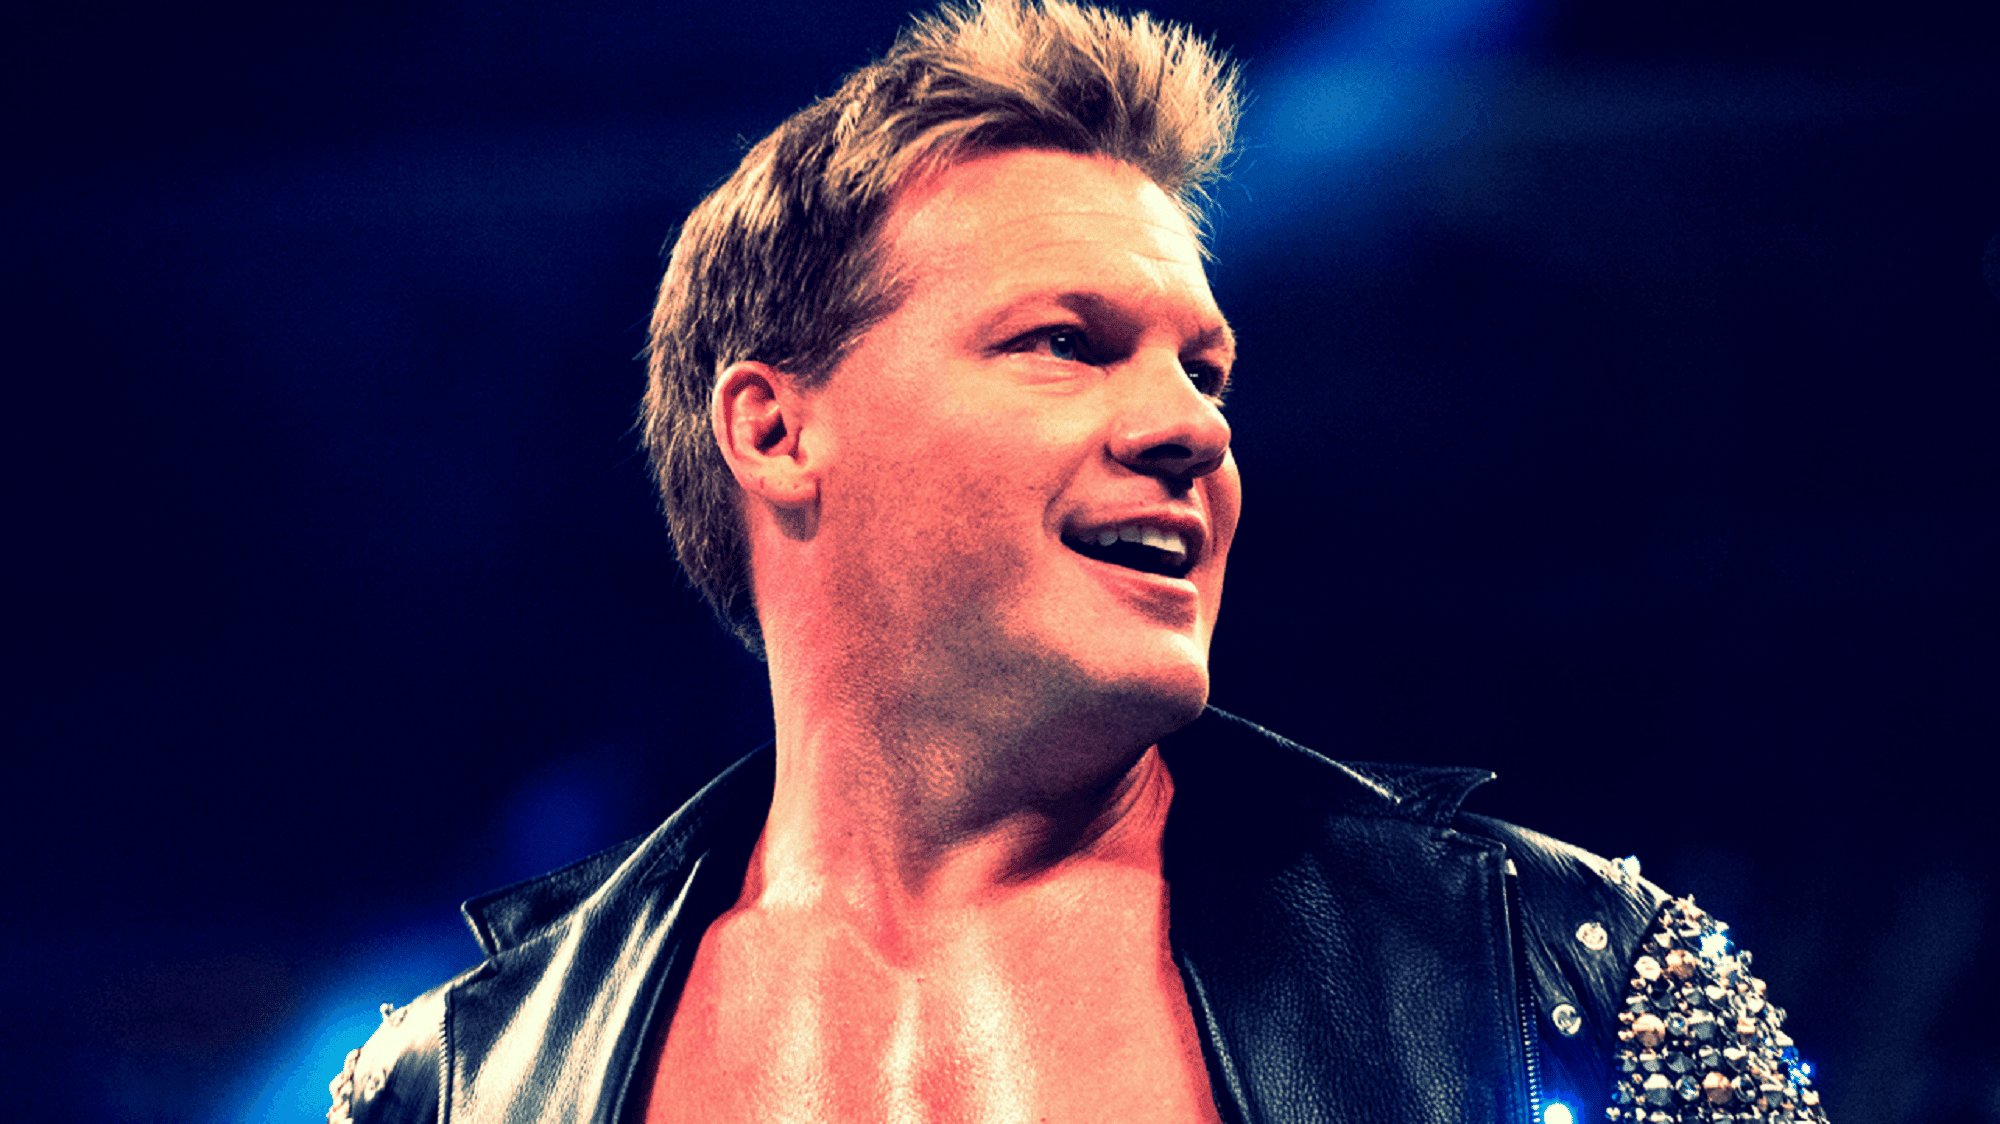 Chris Jericho young